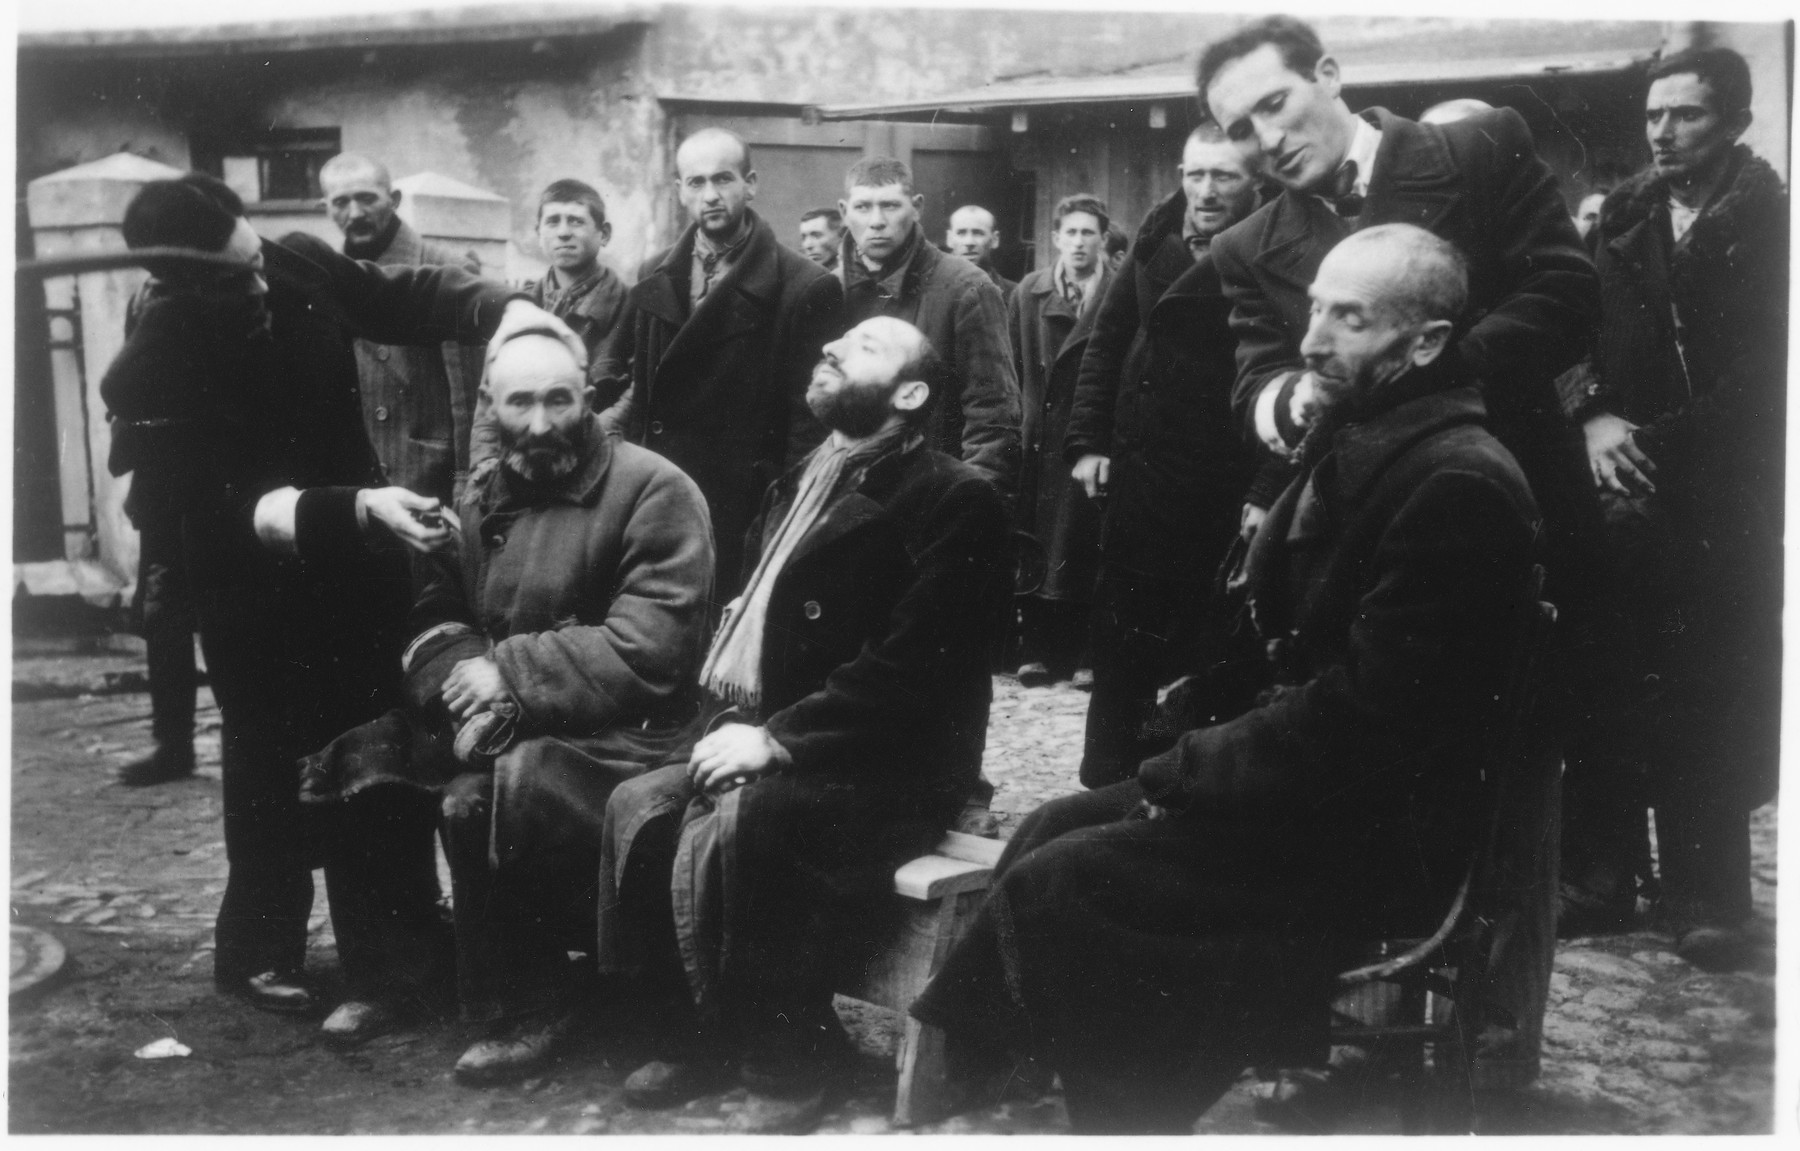 """Jewish men are forced to shave the beards of other religious Jews while SS men watch in amusement.  The caption of the SS-Archiv says """"Reinrassige Juden bei Schoenheitspflege in Palinin (?) Okt. 1941"""" (Purebred Jews during beauty care in Palinin (?) Oct. 1941)."""